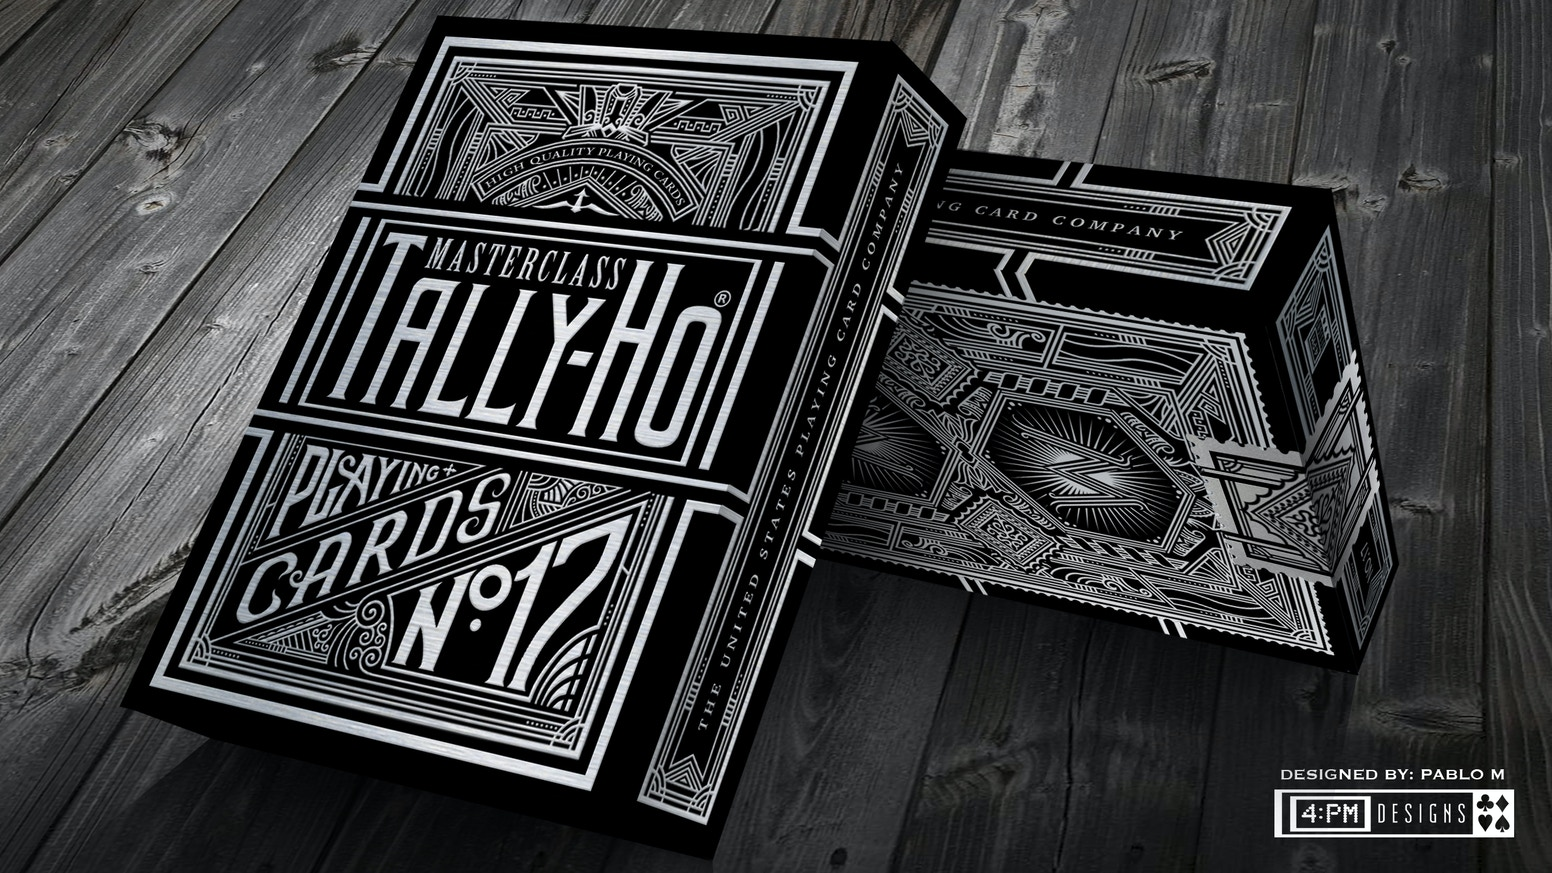 A modification of a classic brand, the Master Class Tally Ho are a set of limited edition decks printed by US Playing Cards Company.